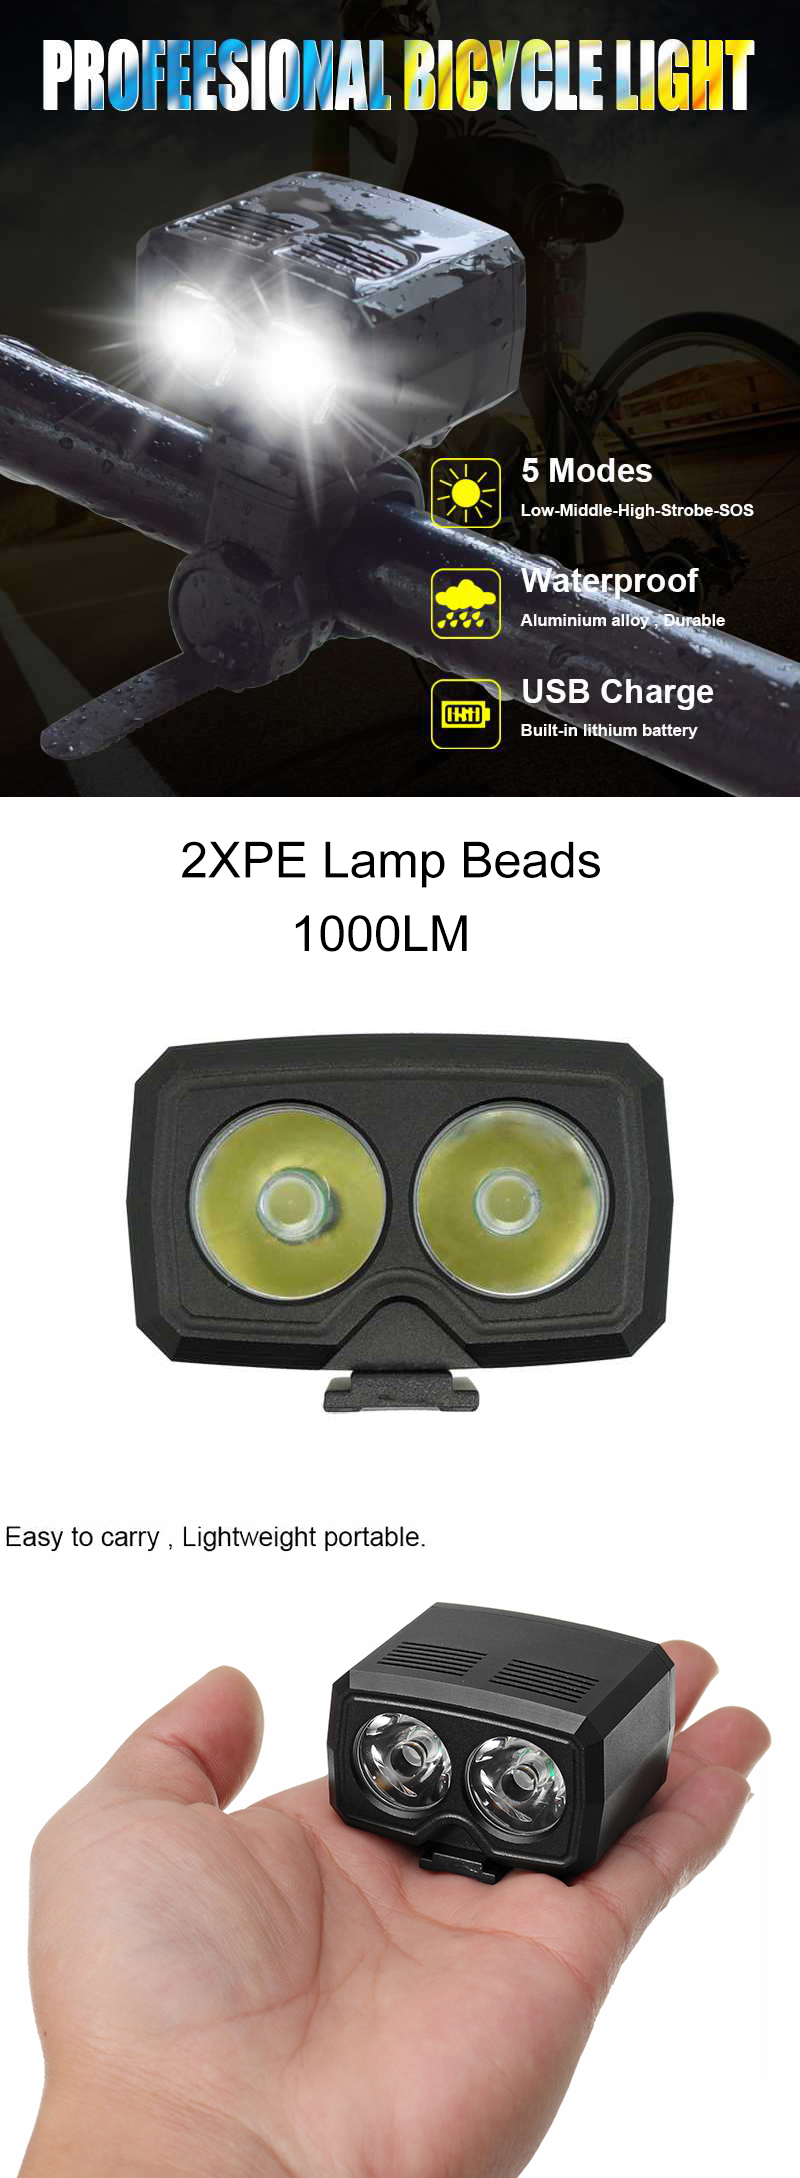 XANES DL05 1000LM 2XPE LED 1200mAh Battery 5-Mode IP65 Waterproof Mini Bicycle Head Light Power Display 360 Degree Rotation